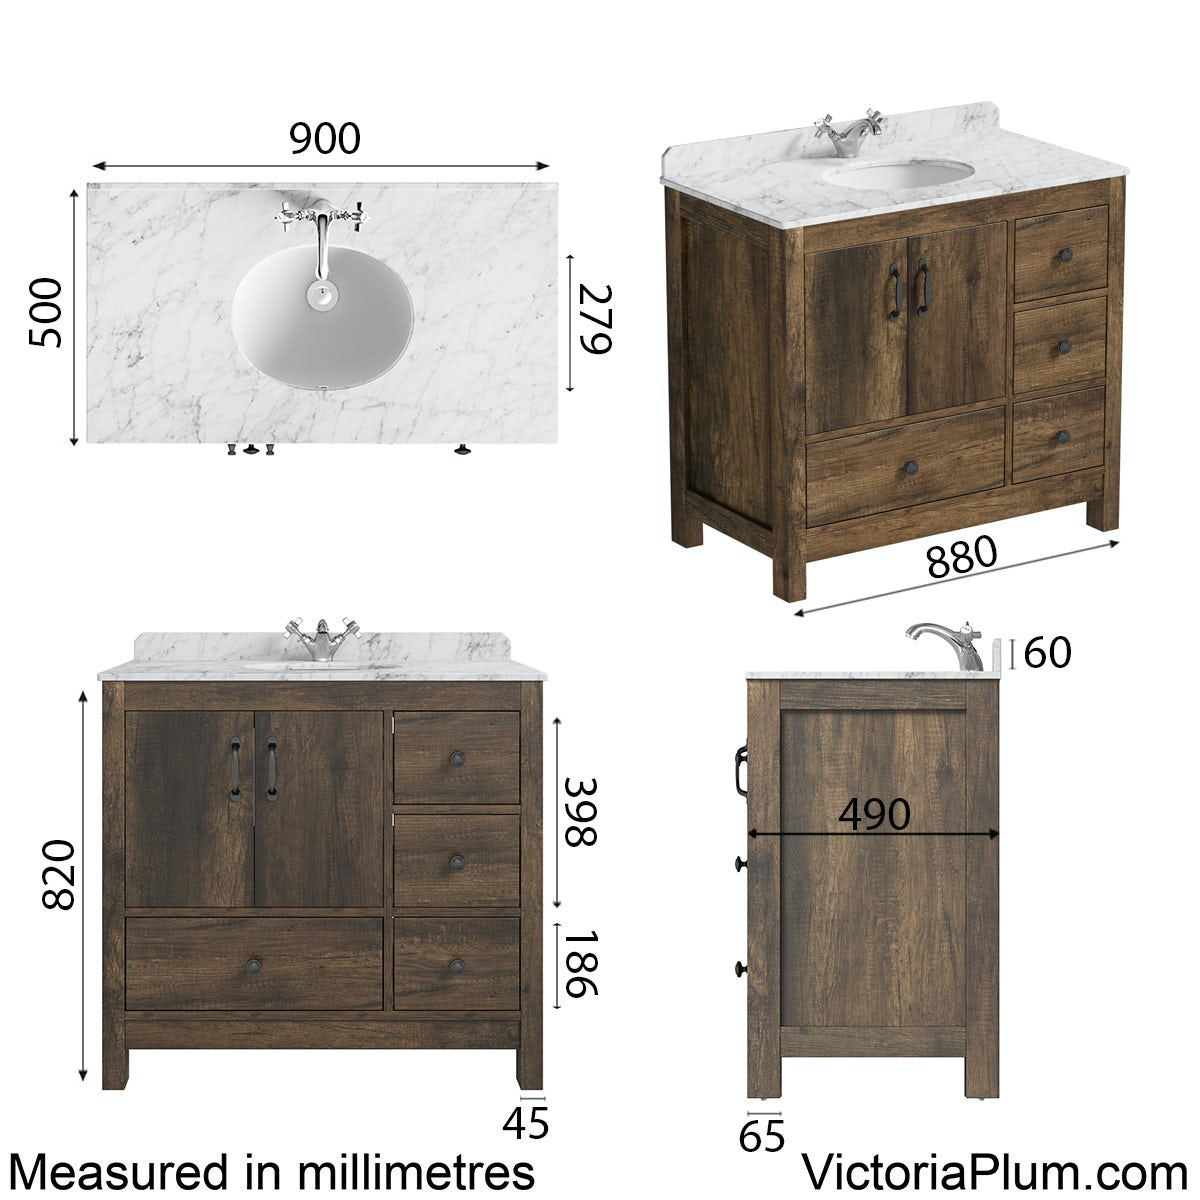 Dimensions for The Bath Co. Dalston vanity unit and white marble basin 900mm